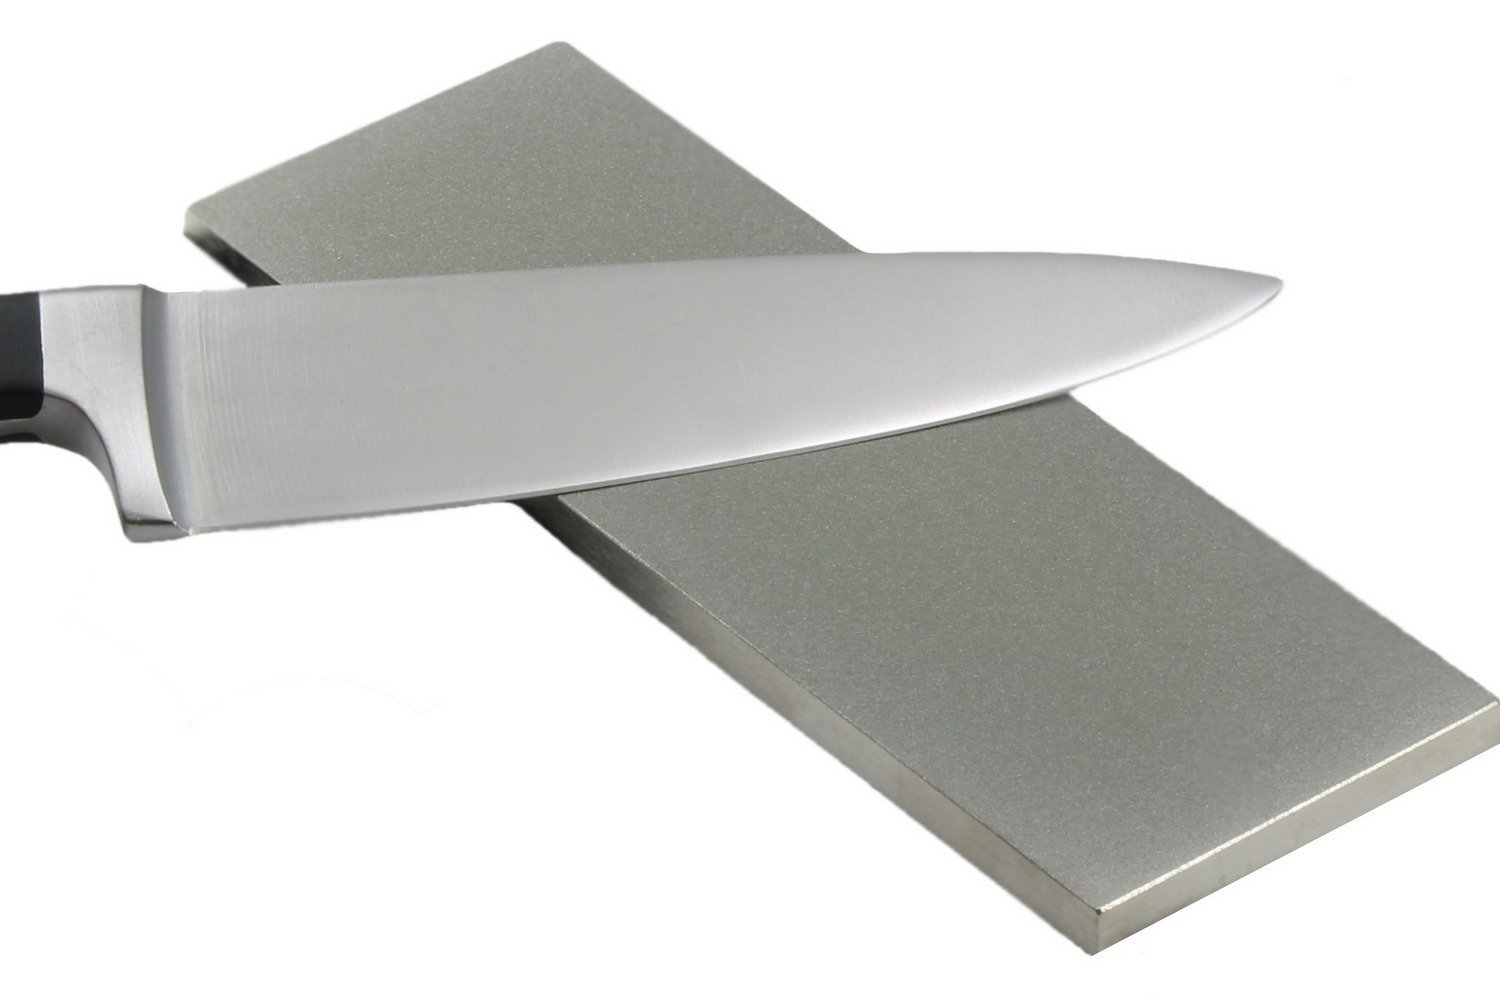 Diamond sharpening tool